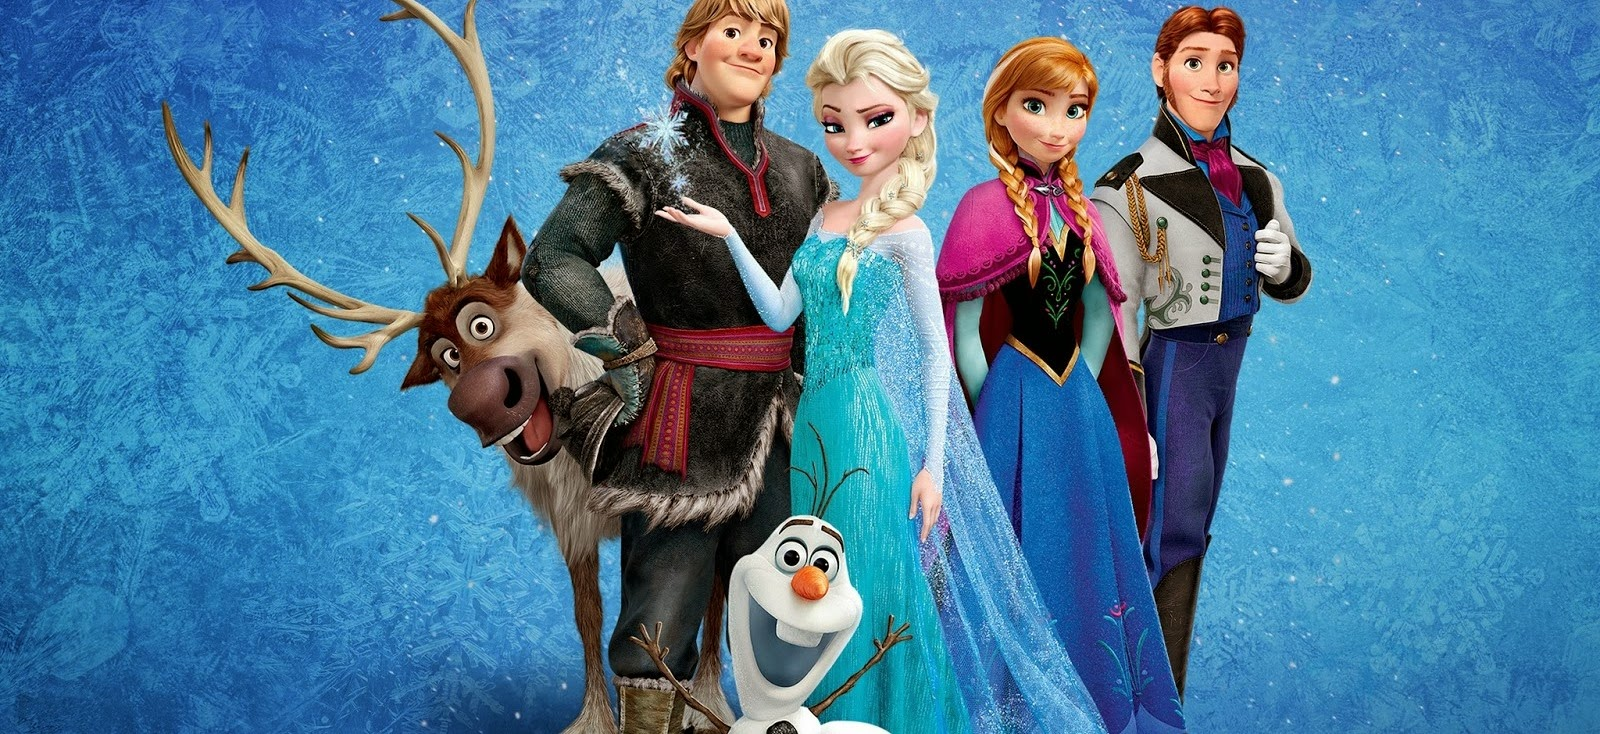 Disney anuncia desenvolvimento de Frozen 2 com Jennifer Lee & Chris Buck